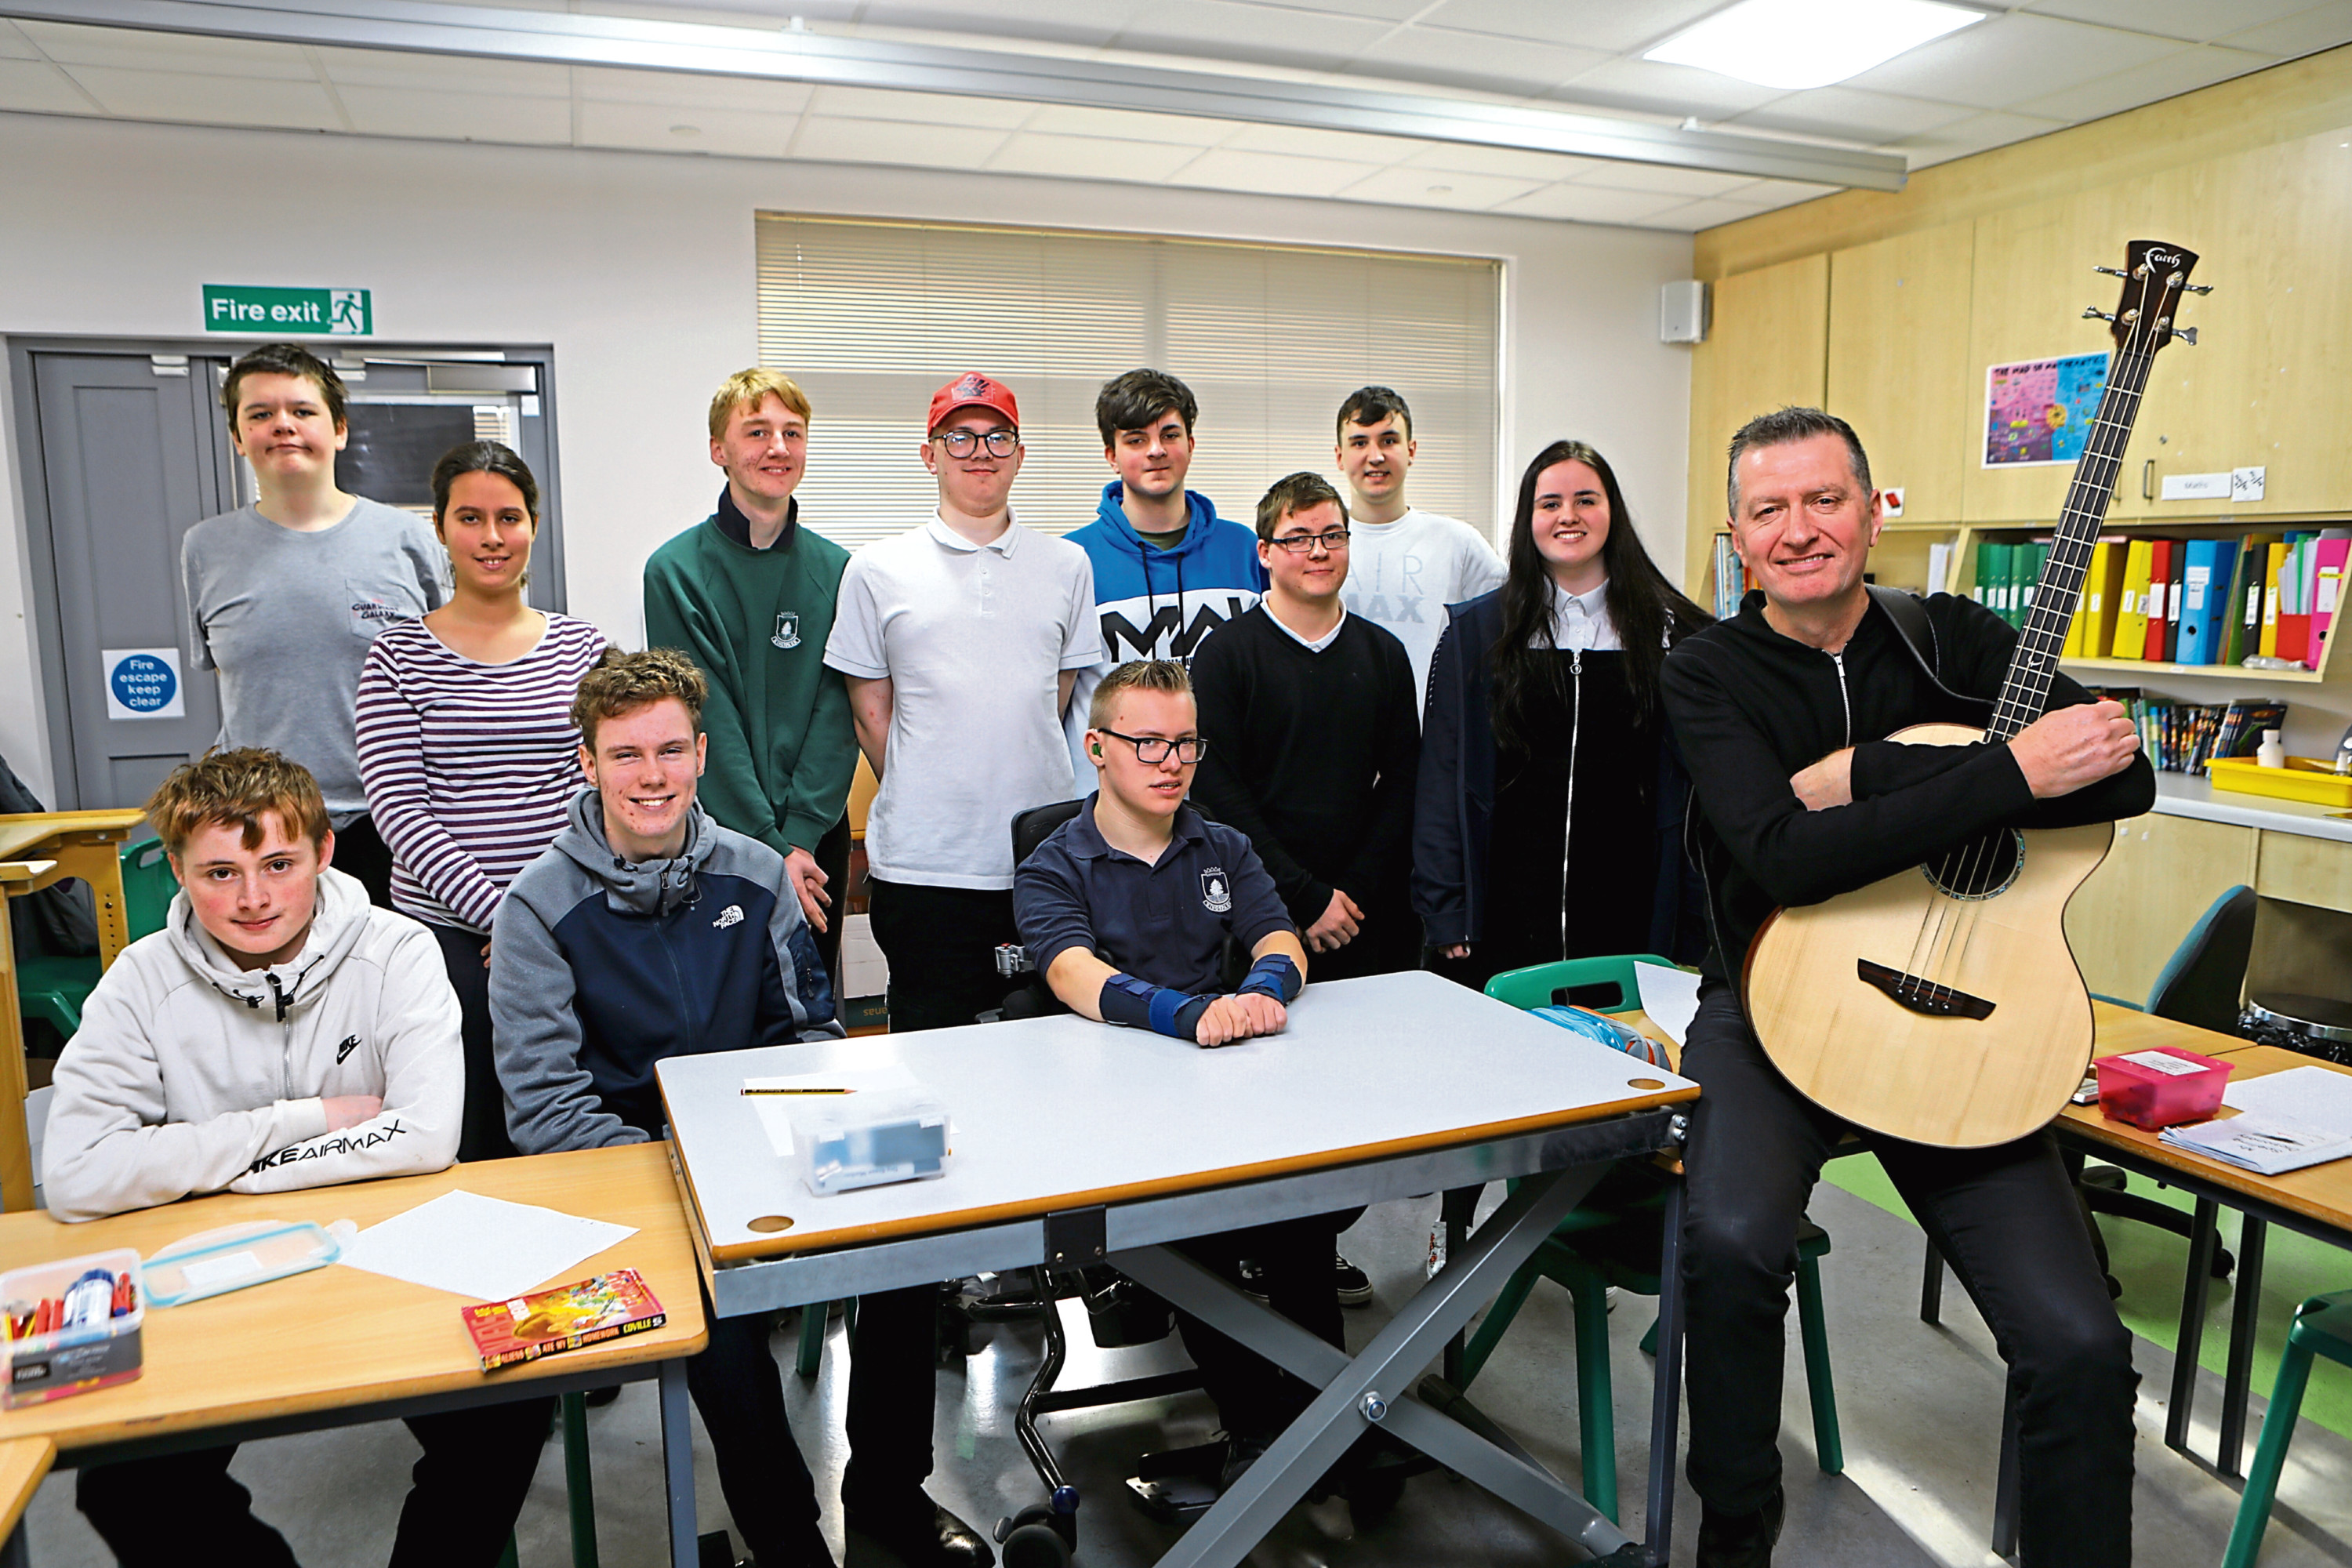 Ged Grimes, bassist from Simple Minds, chatted to senior pupils at Kingspark School.